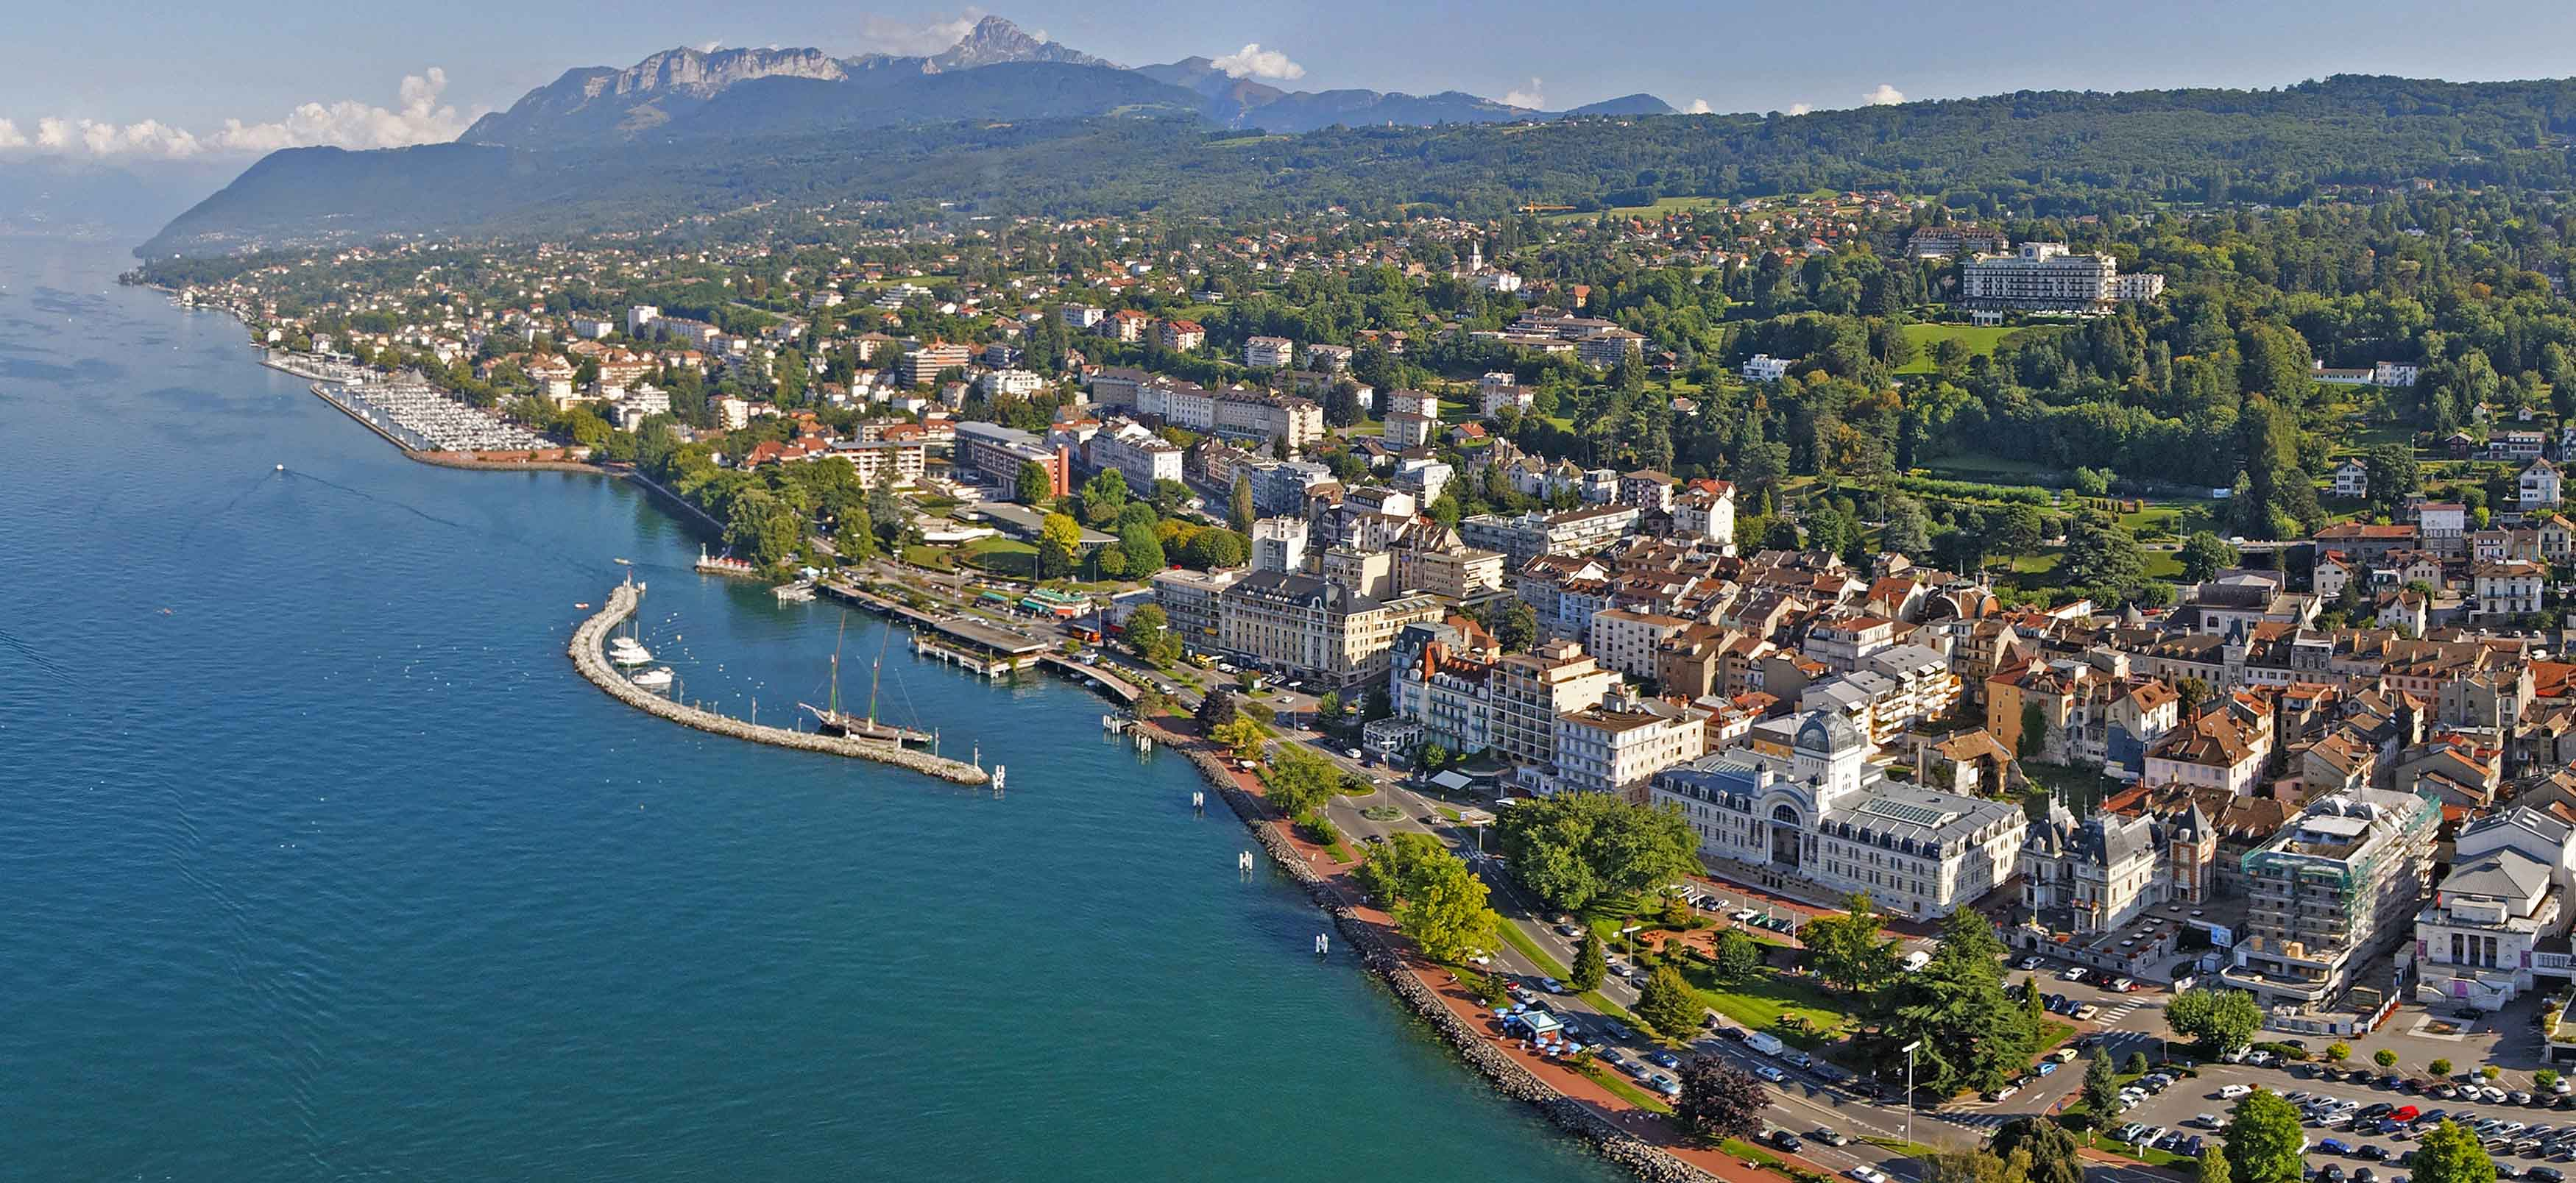 Evian destination